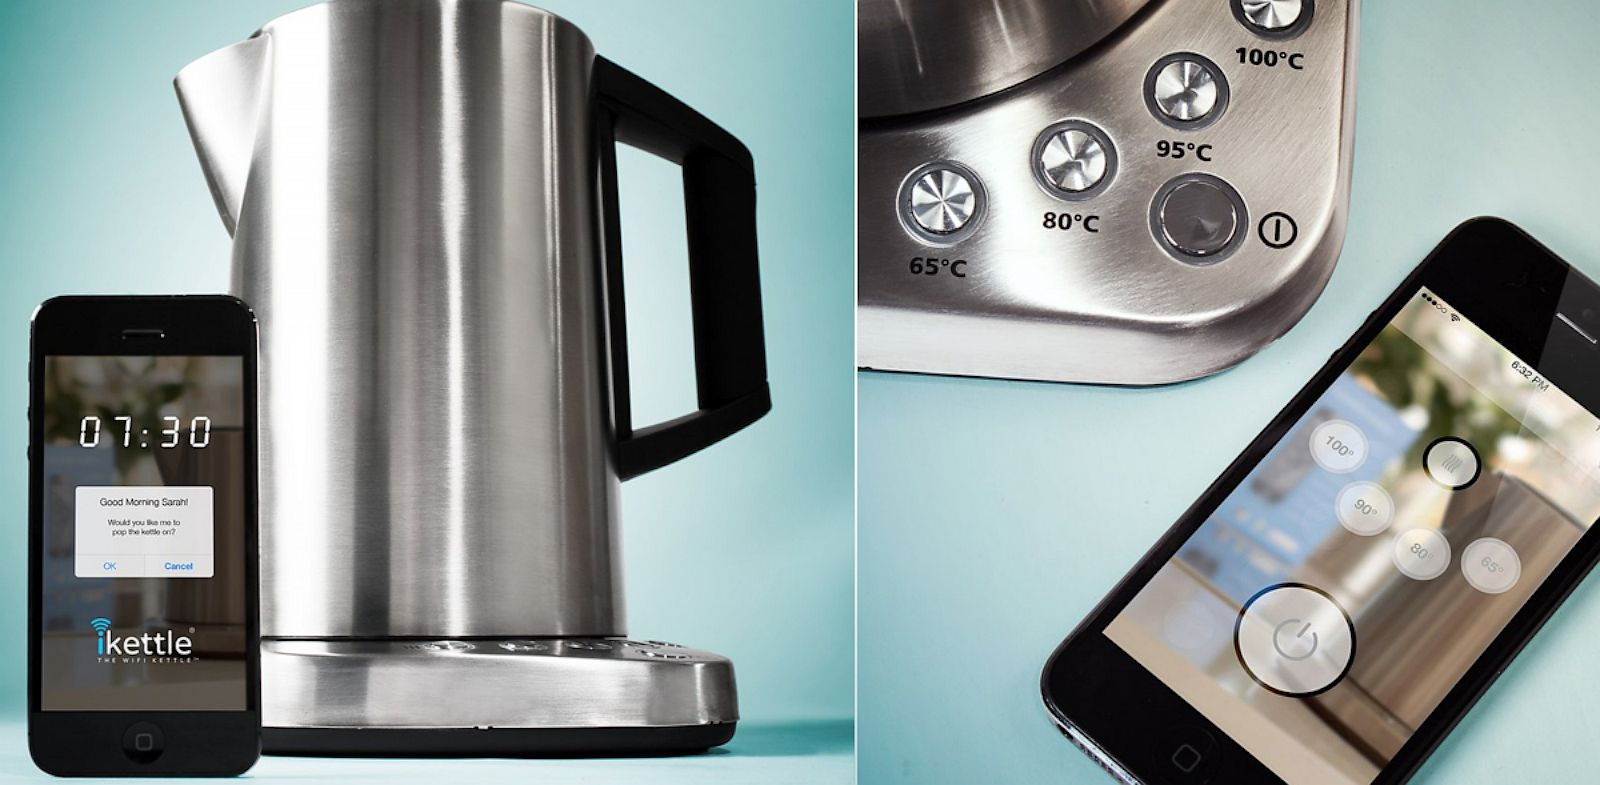 PHOTO: The iKettle lets you control a kettle with your smartphone.